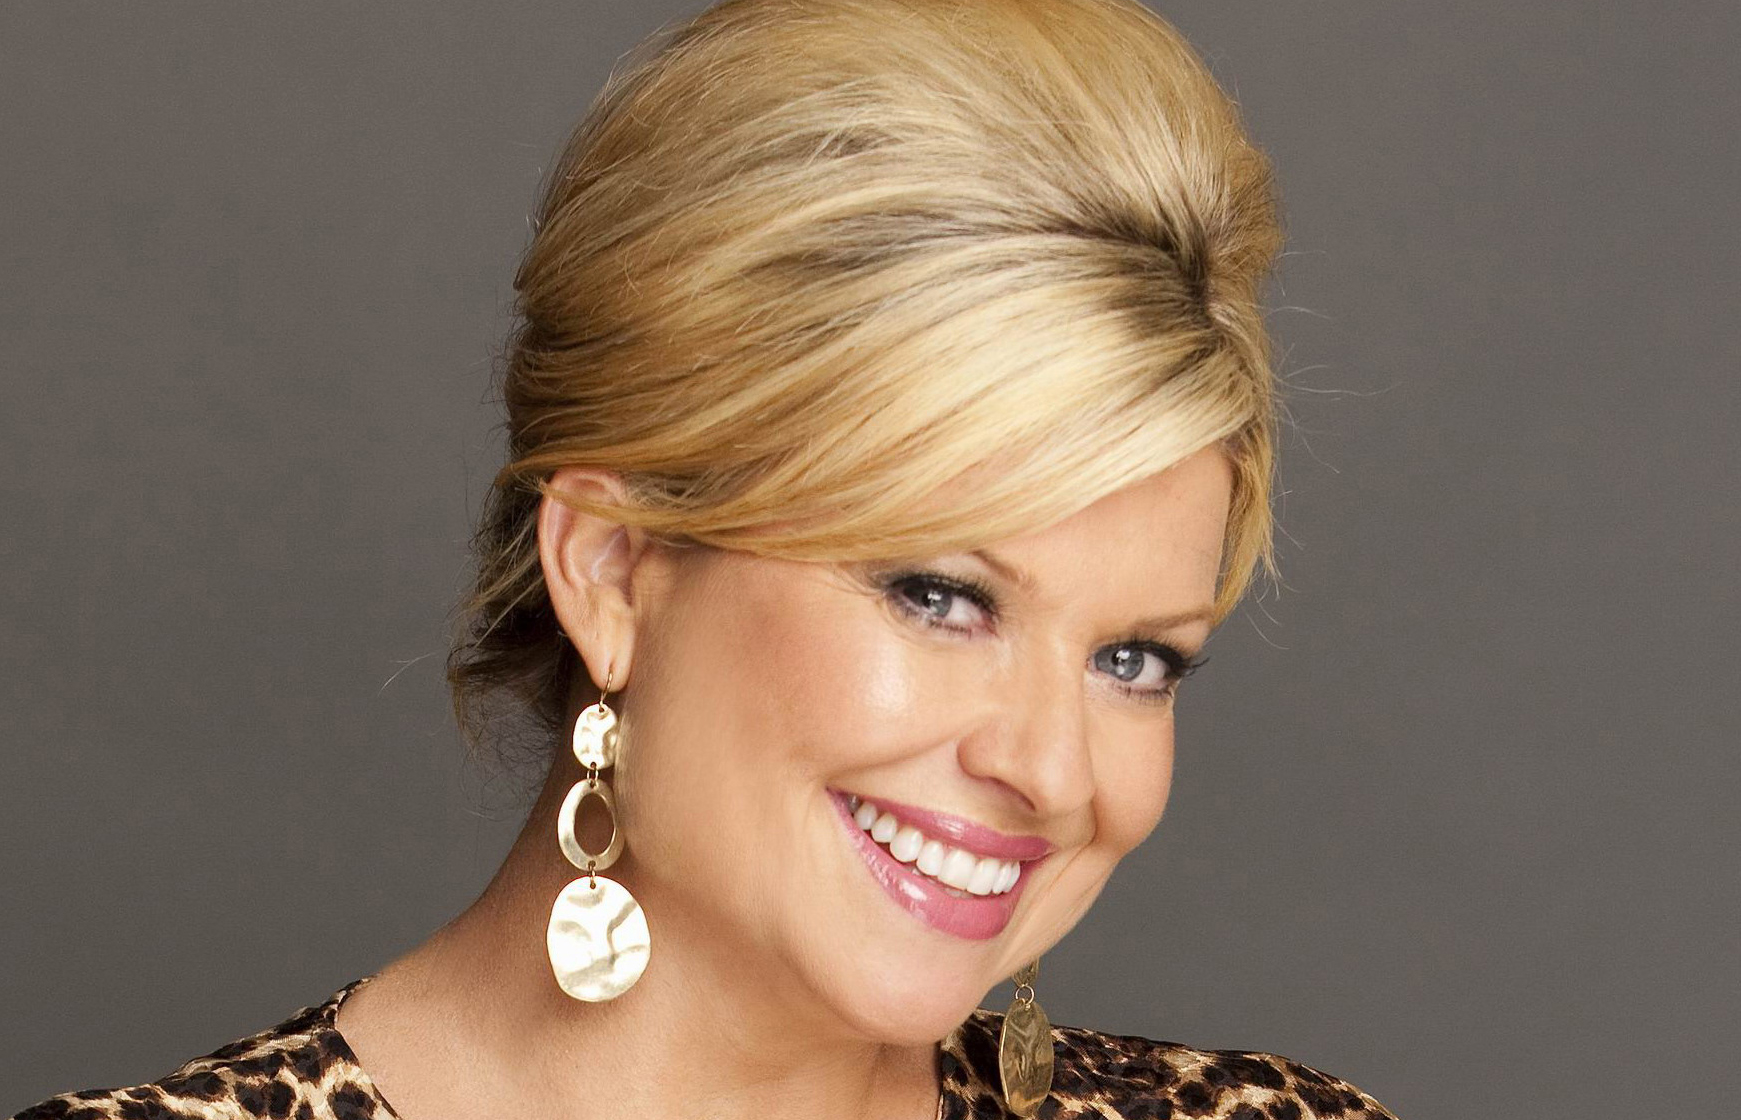 Marilyn Chambers Emily Symons